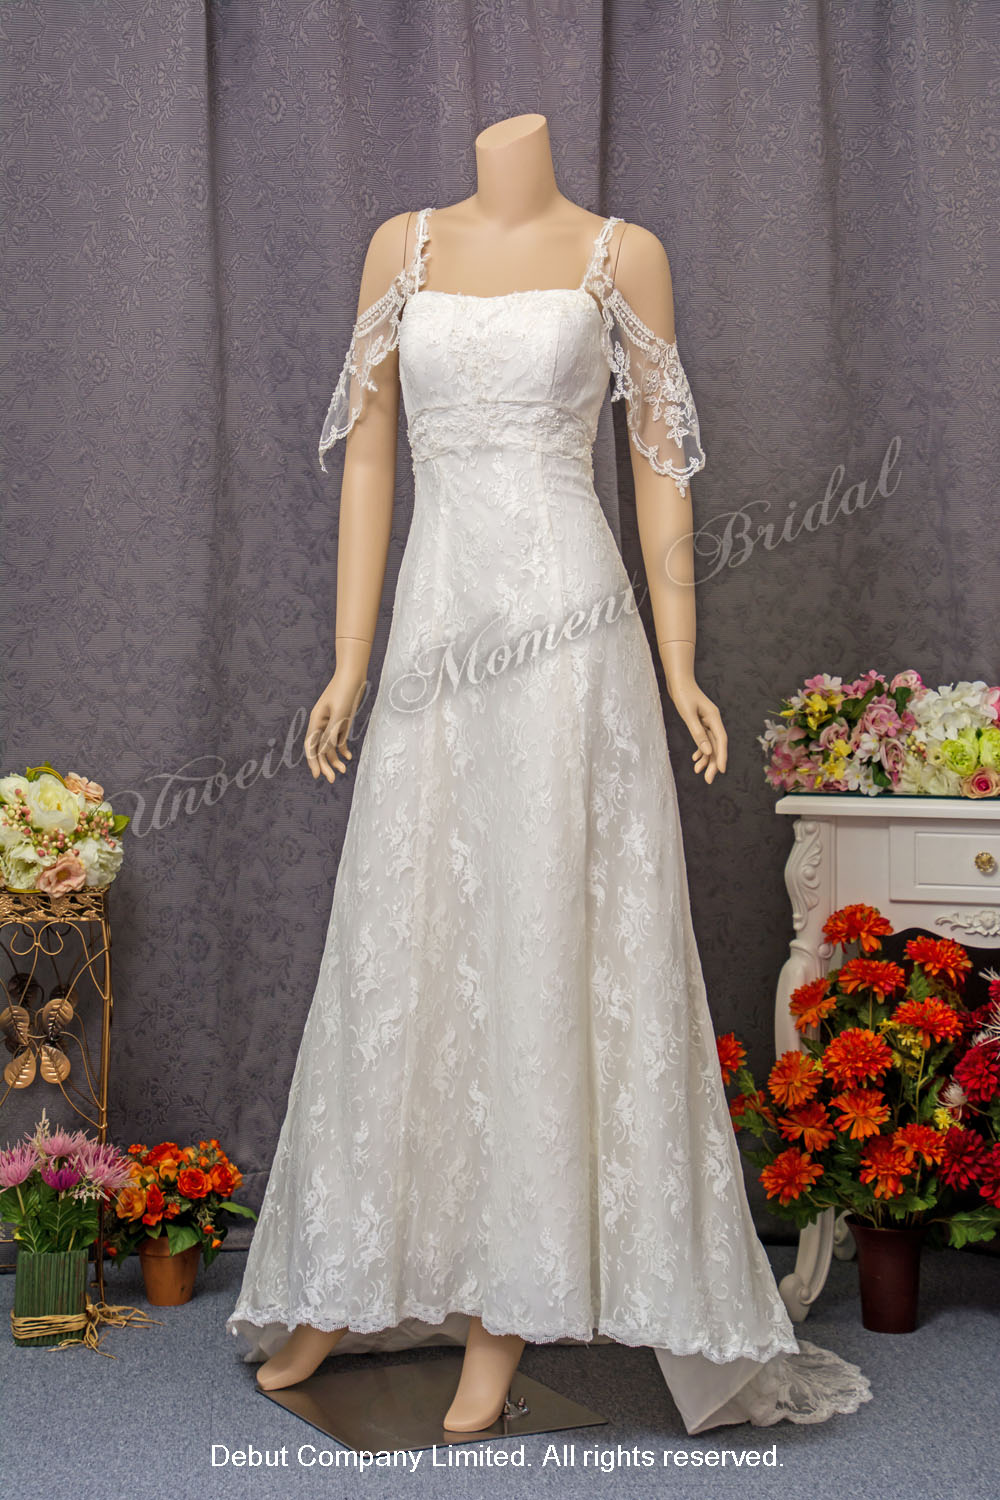 Spaghetti Straps, empire waist, A-line cutting, carefree wedding dress with a sweep train. 吊帶, 垂肩帶, 蕾絲, 小拖尾輕婚紗